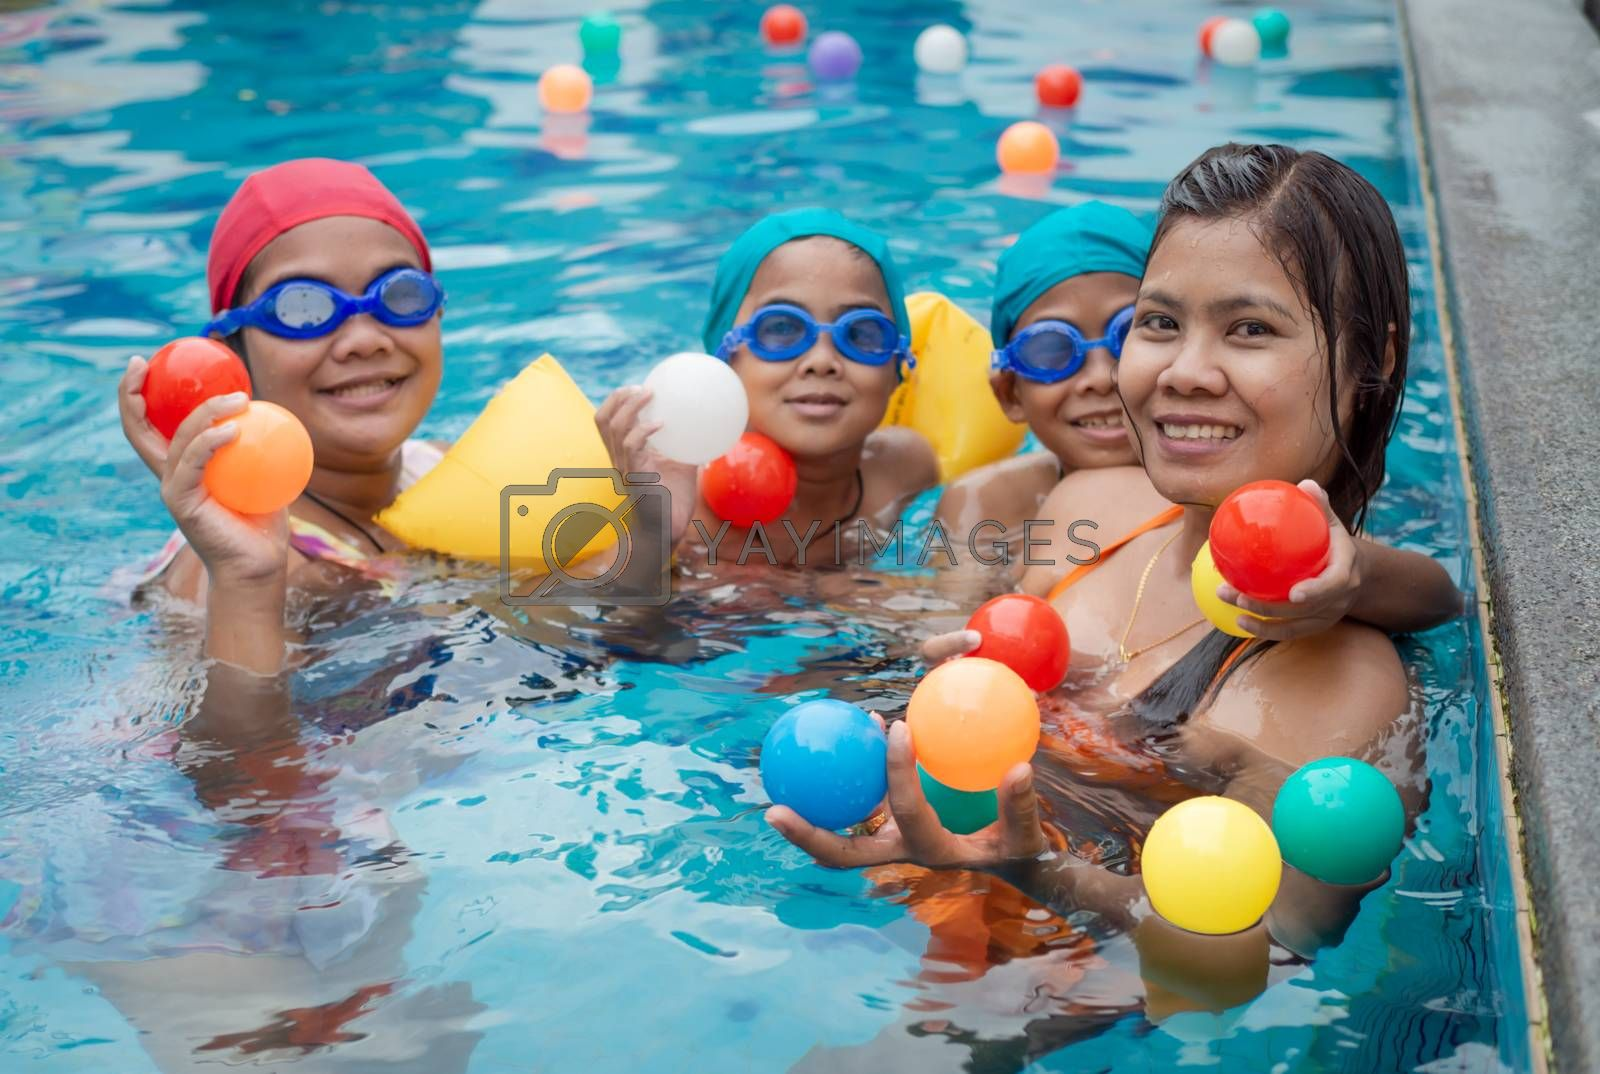 A portrait of a mother and her children playing ball in the pool.